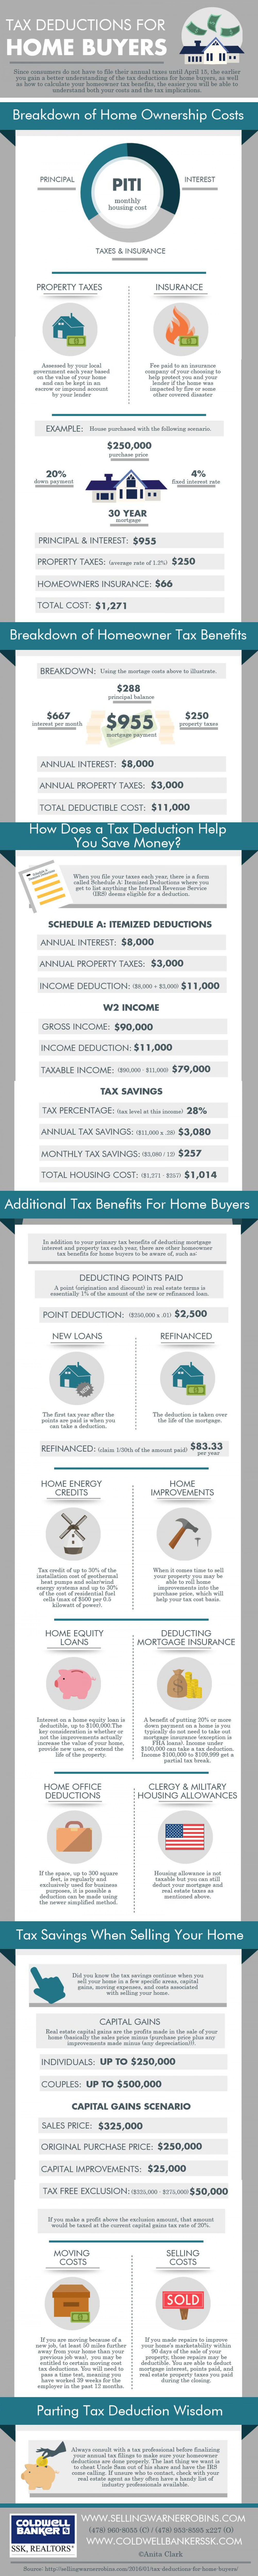 Tax Deductions for Home Buyers Infographic